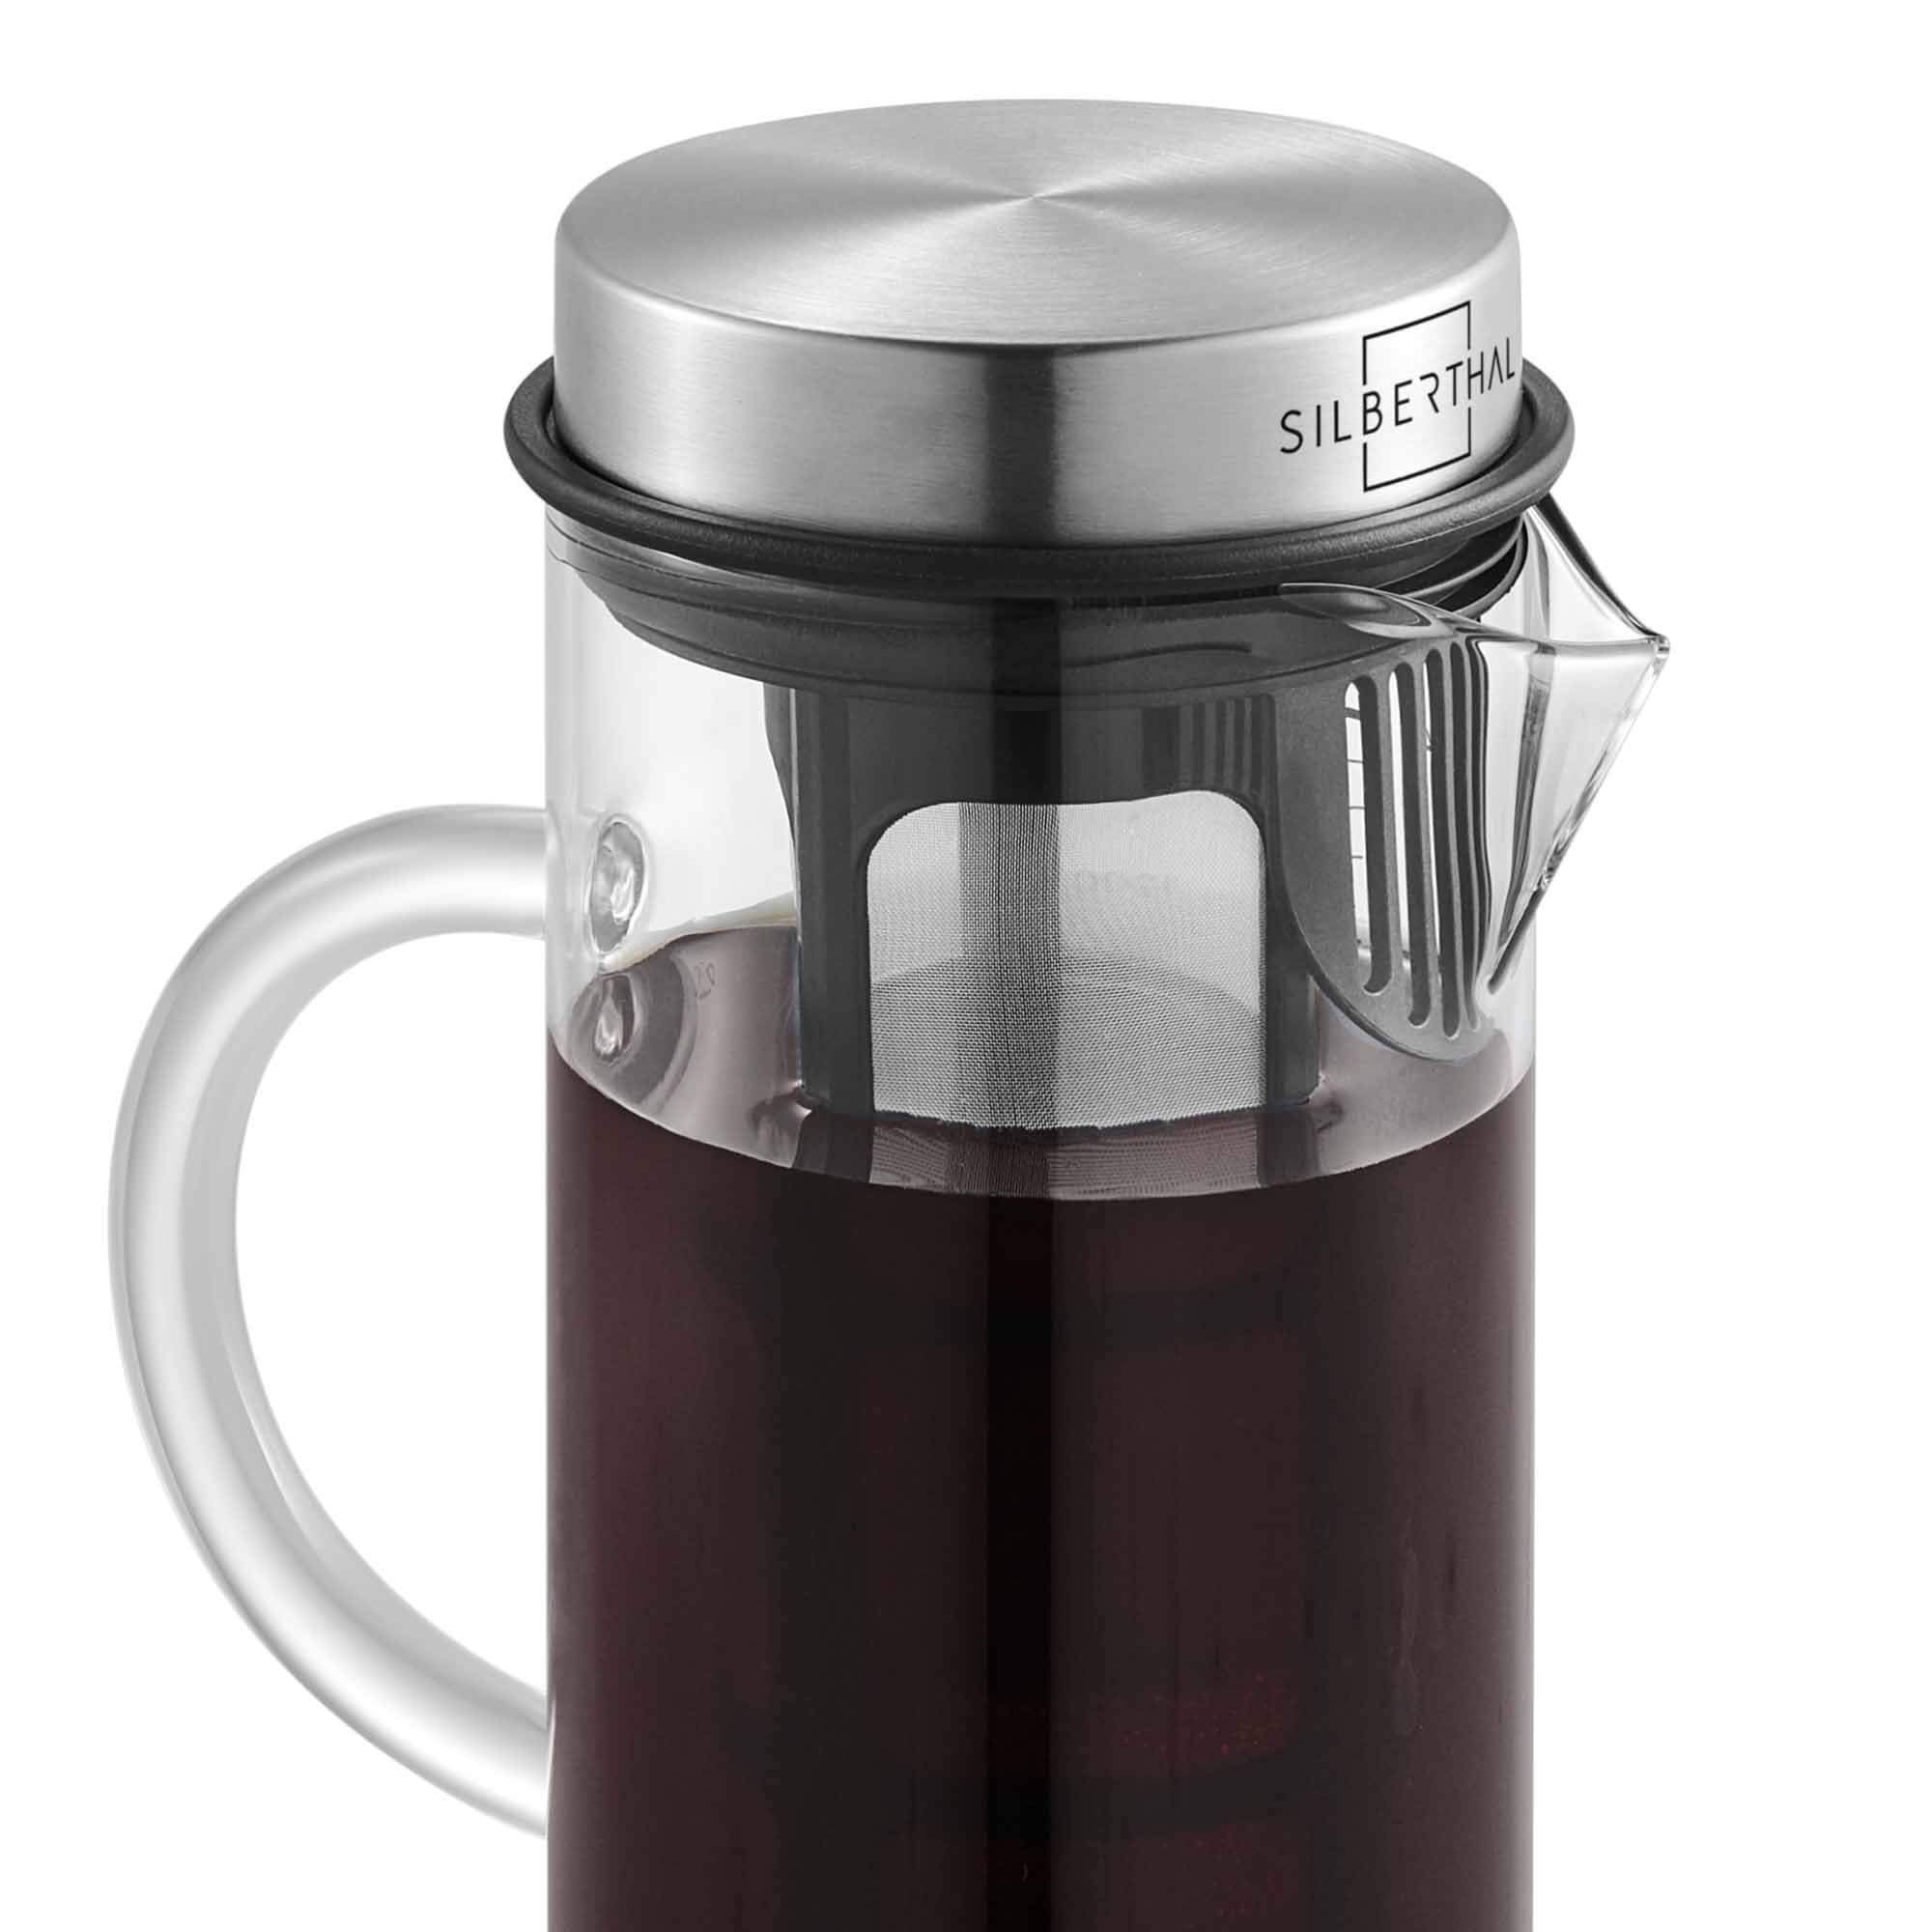 SILBERTHAL-Cold-Brew-Coffee-Maker-Glass-Stainless-Steel-Long-Insert-for-Iced-Coffee-Tea-13L